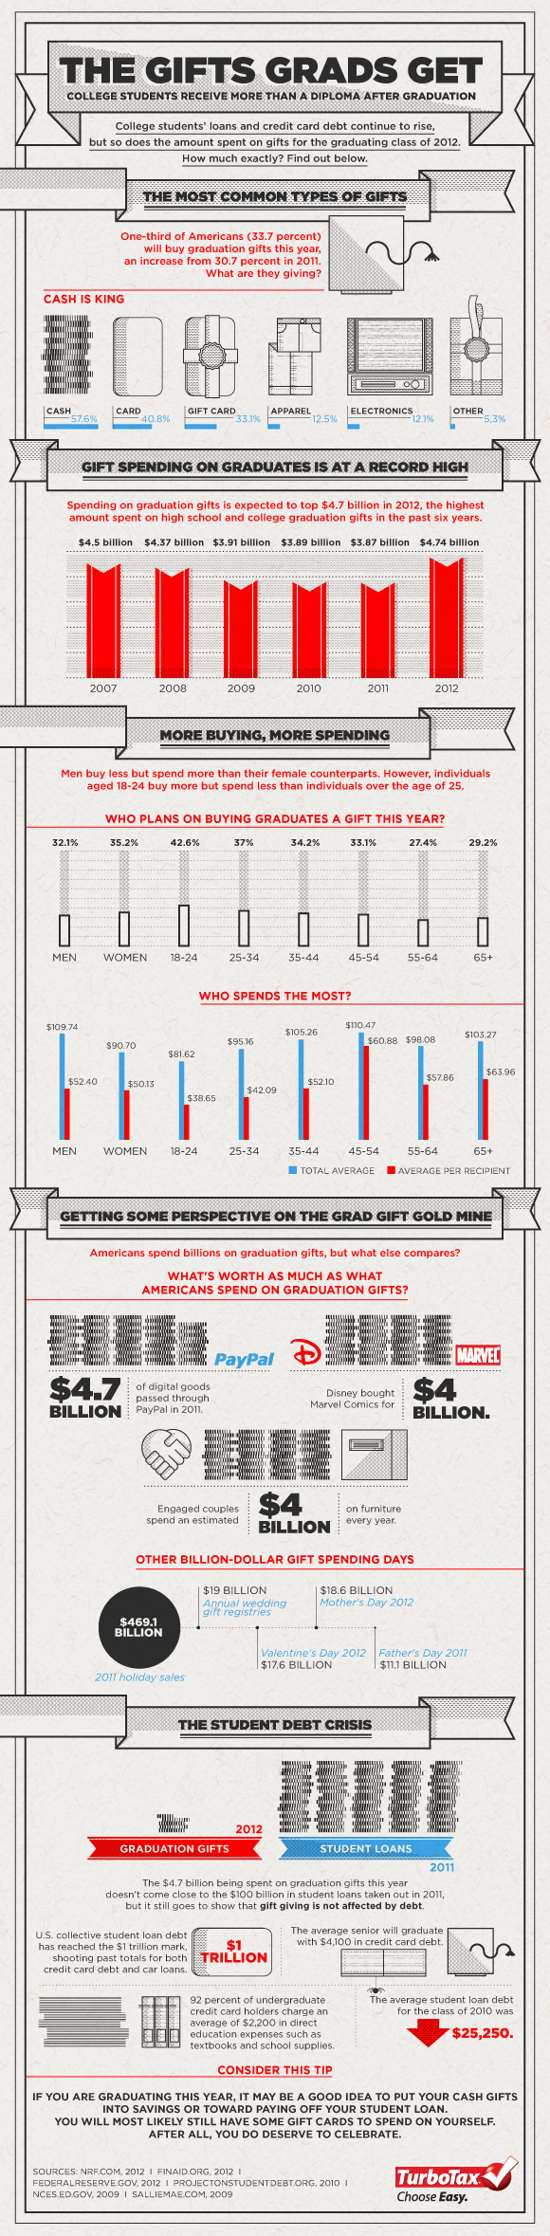 infographic COLLEGE GRADS AND GIFTS THAT KEEP GIVING